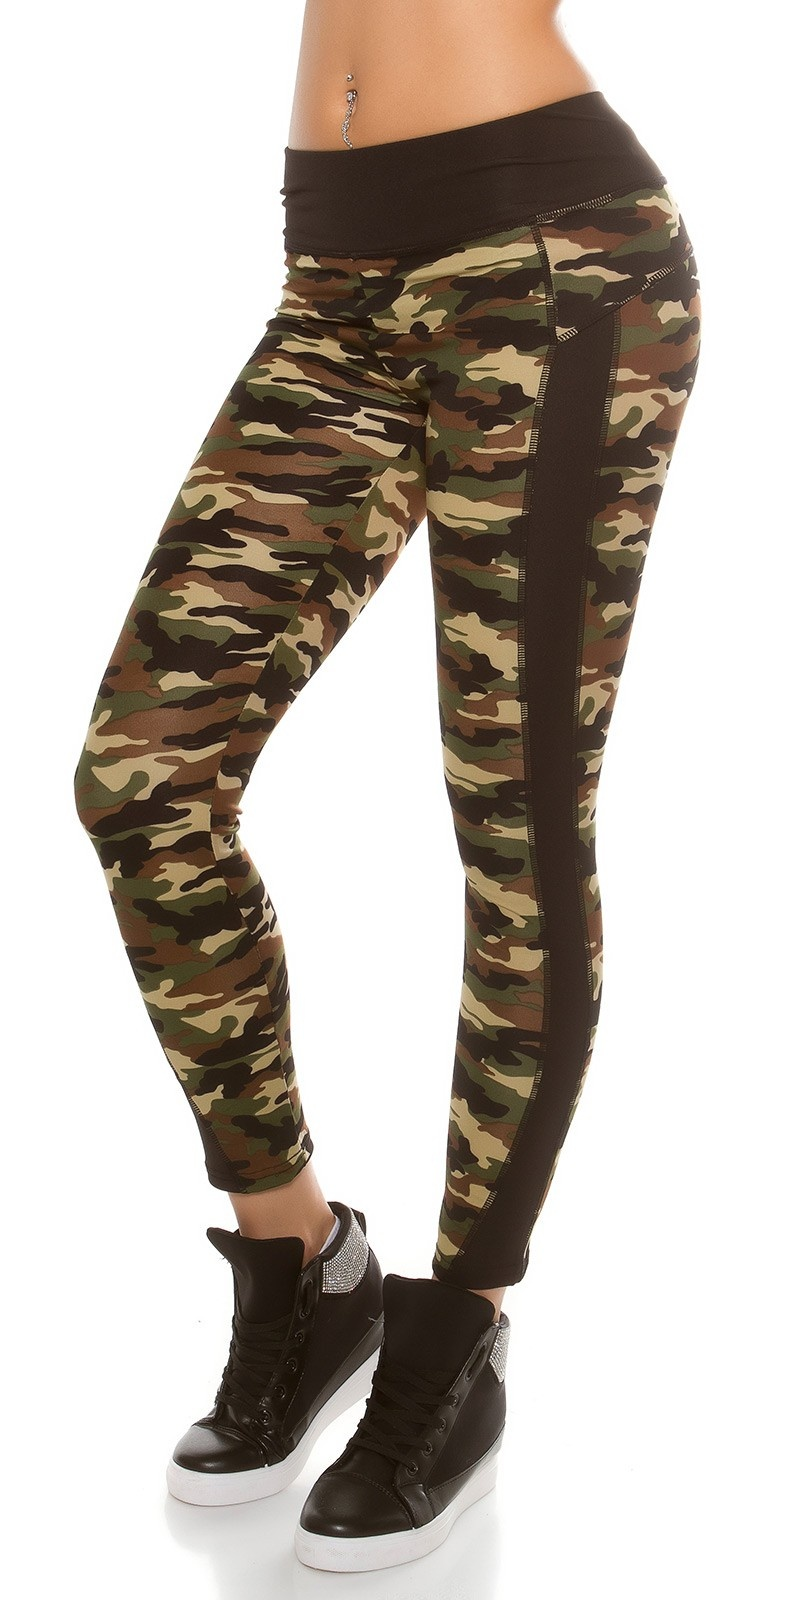 Trendy Workout Leggings Camouflage Print Black